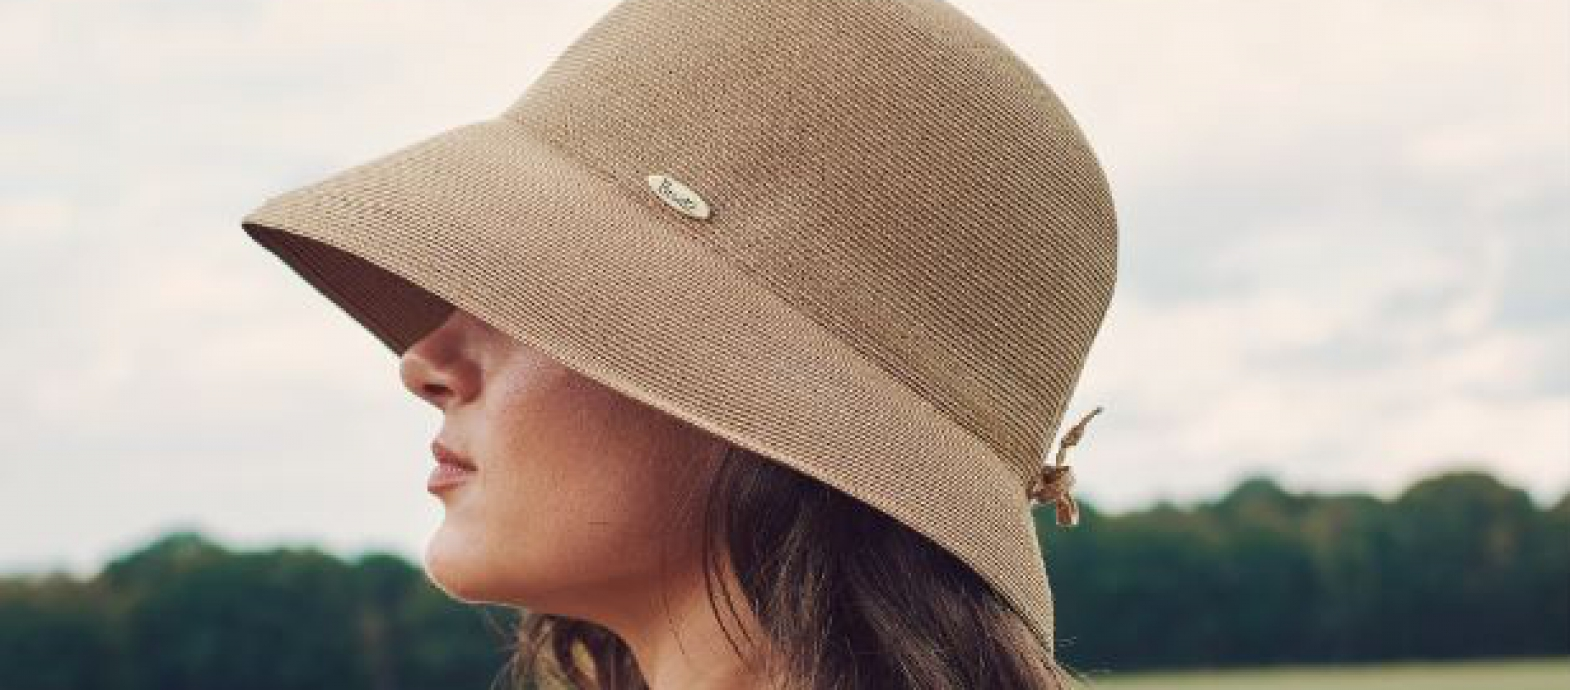 Bronte's Zoey summer cloche hat is available again: rollable, UV50 protection & OSFA